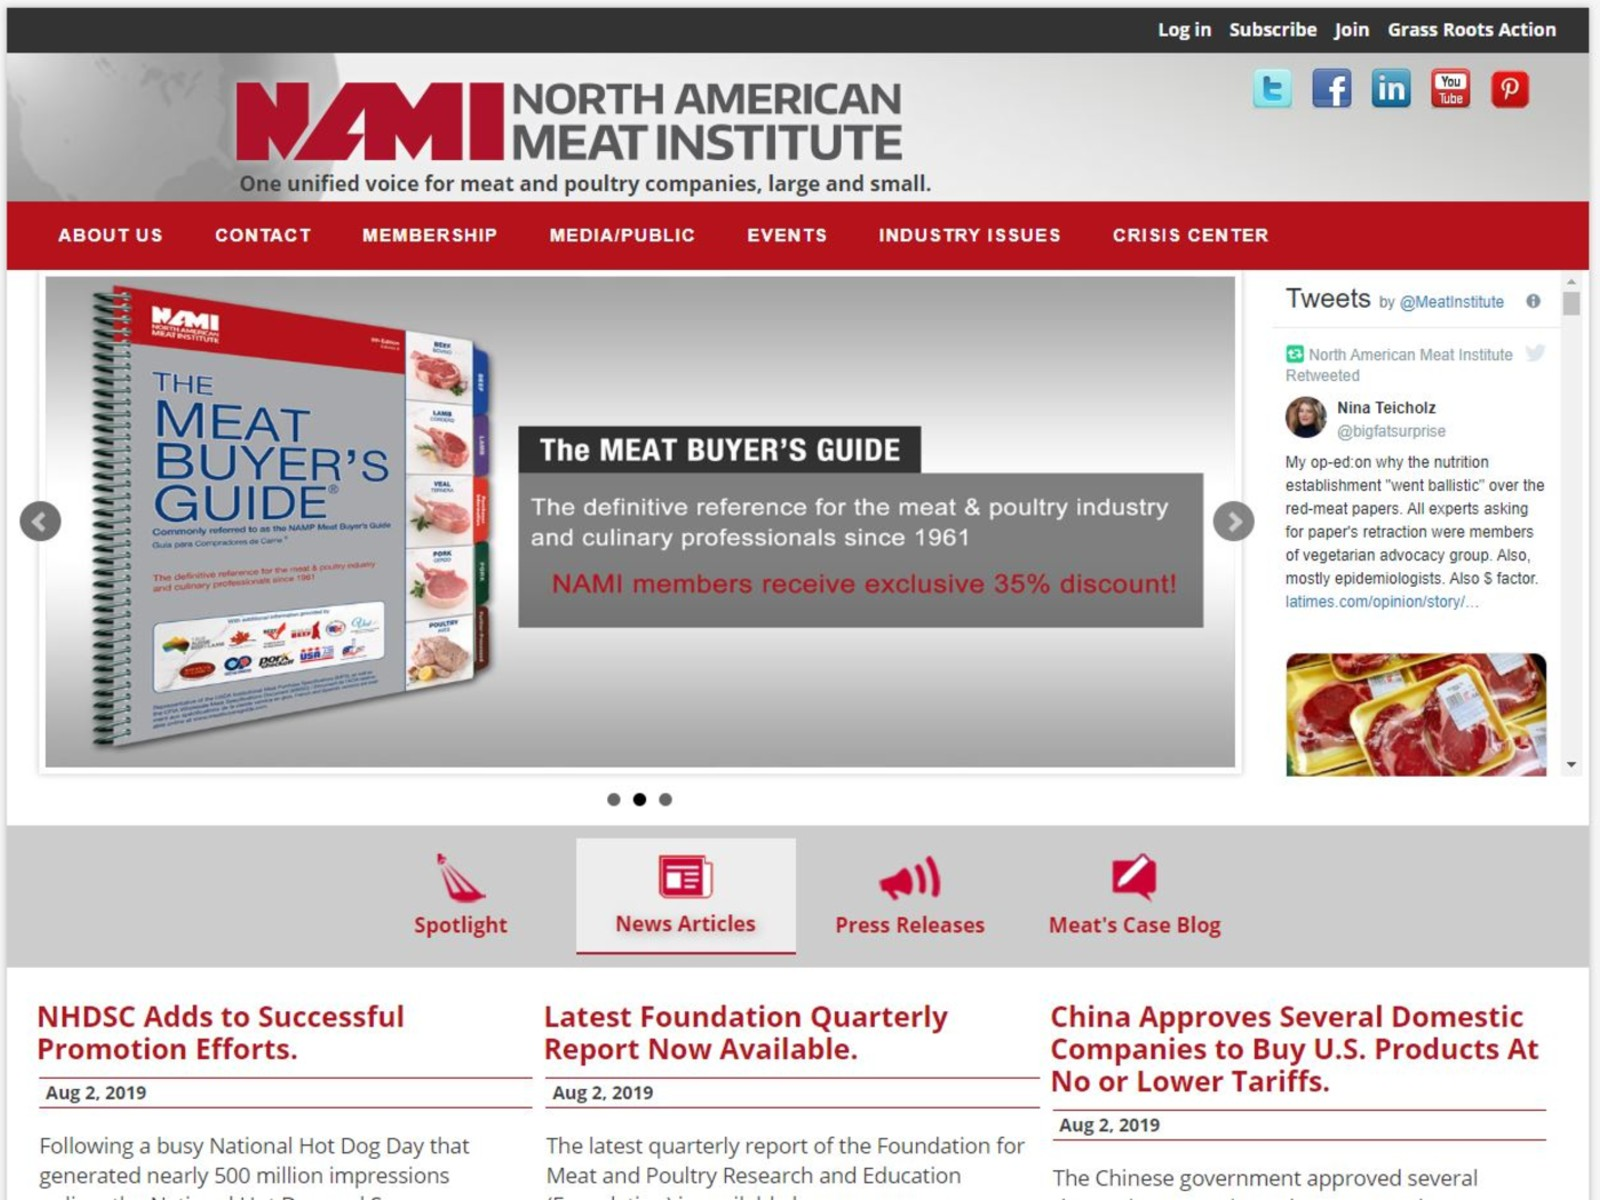 North American Meat Institute Challenging California Prop 12